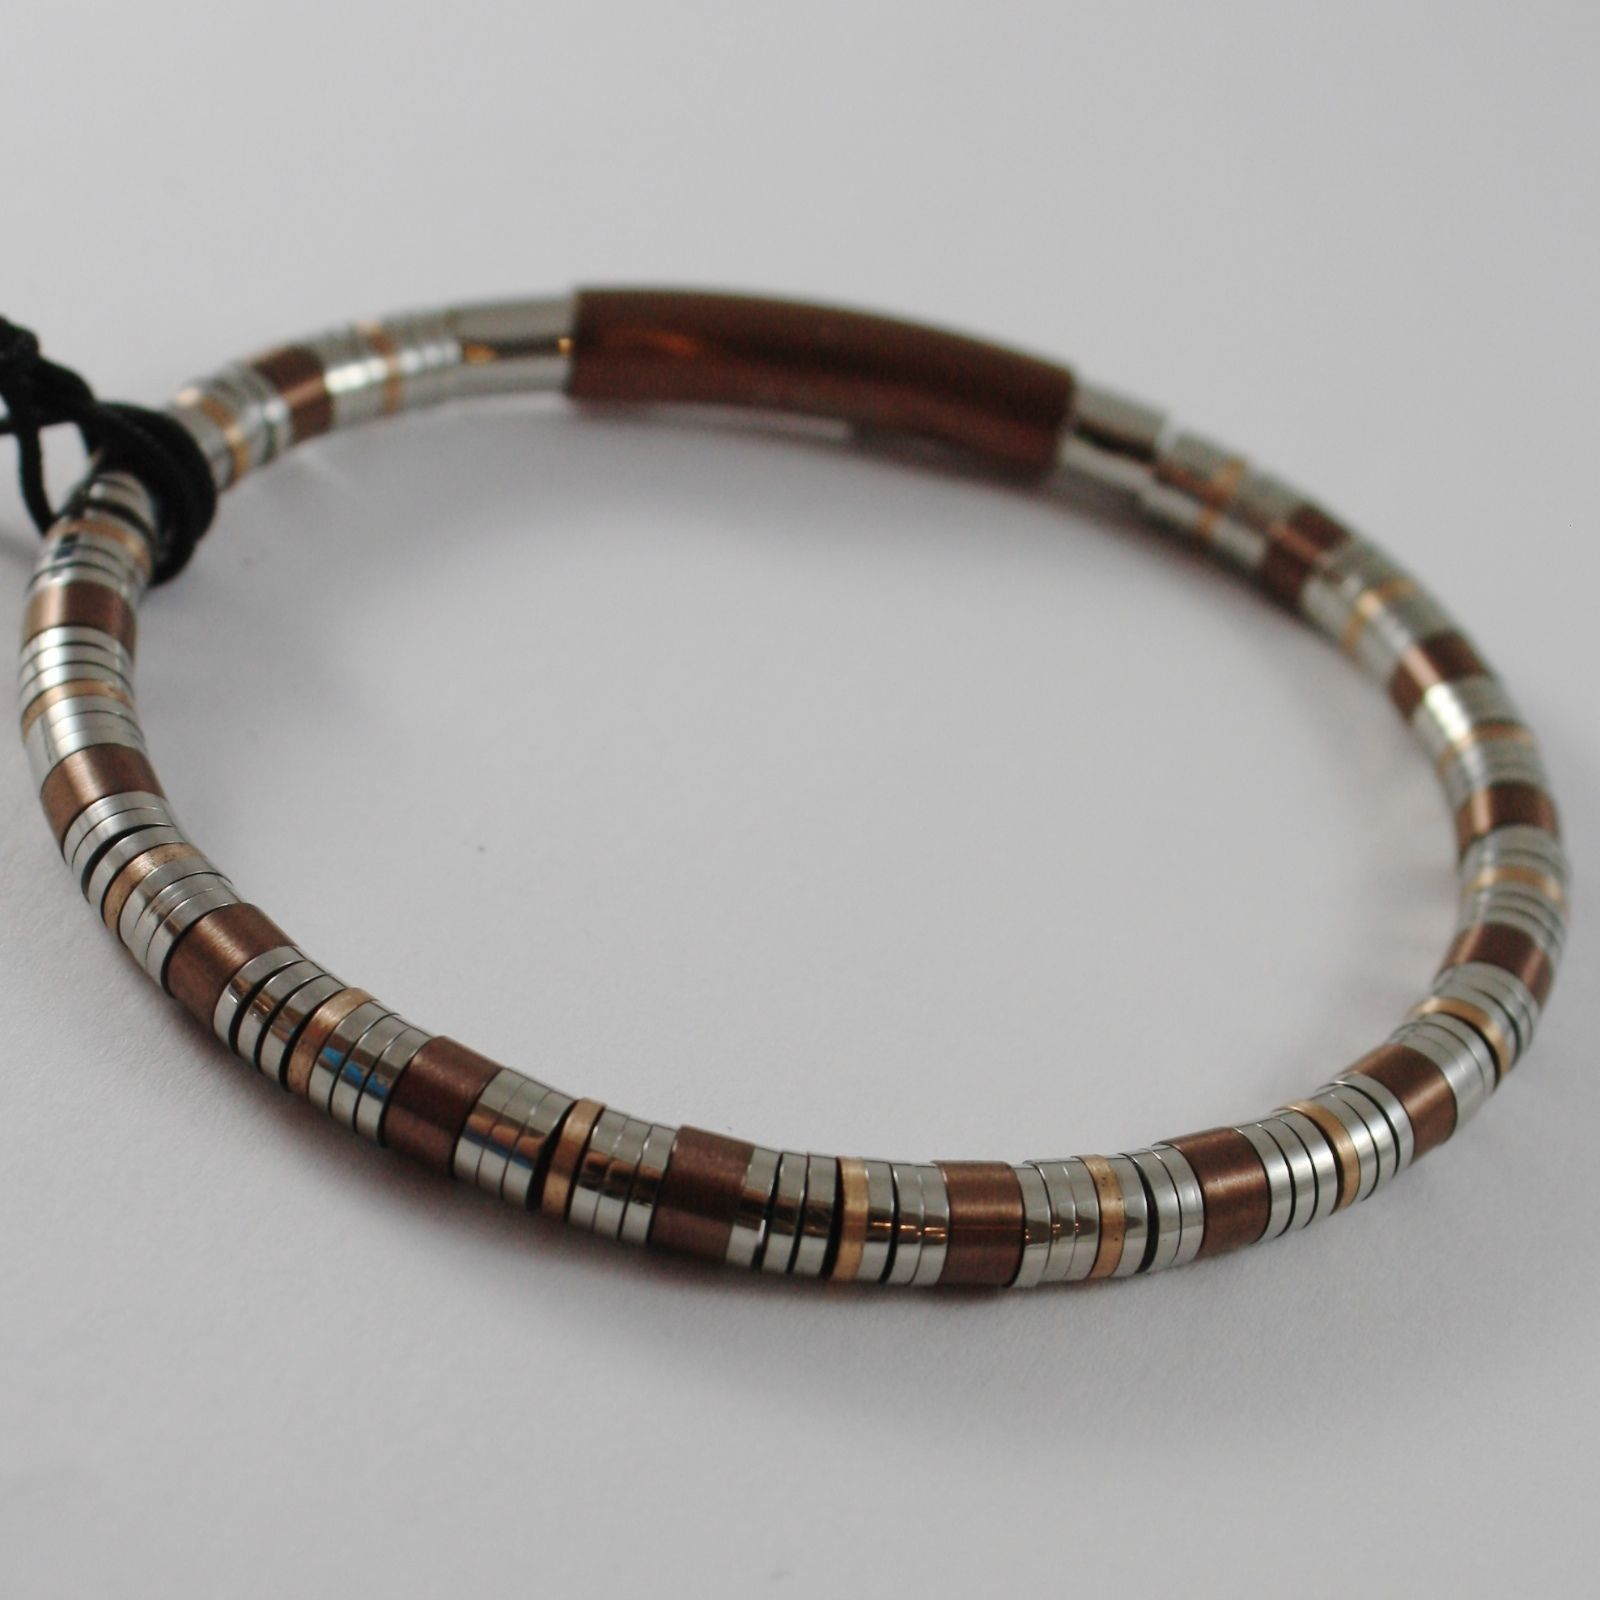 STAINLESS BROWN WHITE & ROSE STEEL TUBE DISCS BRACELET, 4US BY CESARE PACIOTTI